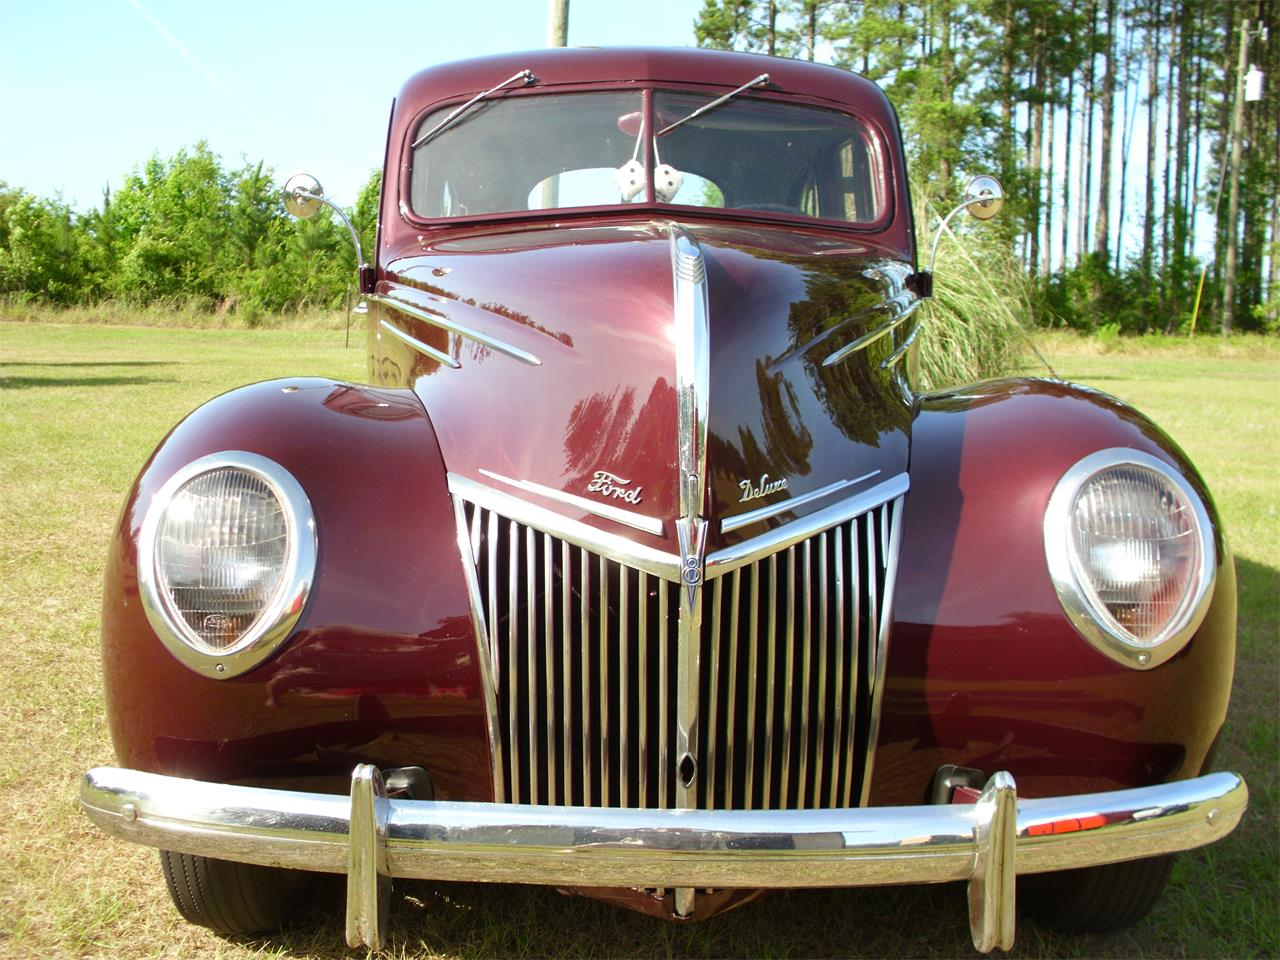 Large Picture of '39 Ford Fordor Deluxe located in Oak Park Georgia Offered by a Private Seller - ETZZ